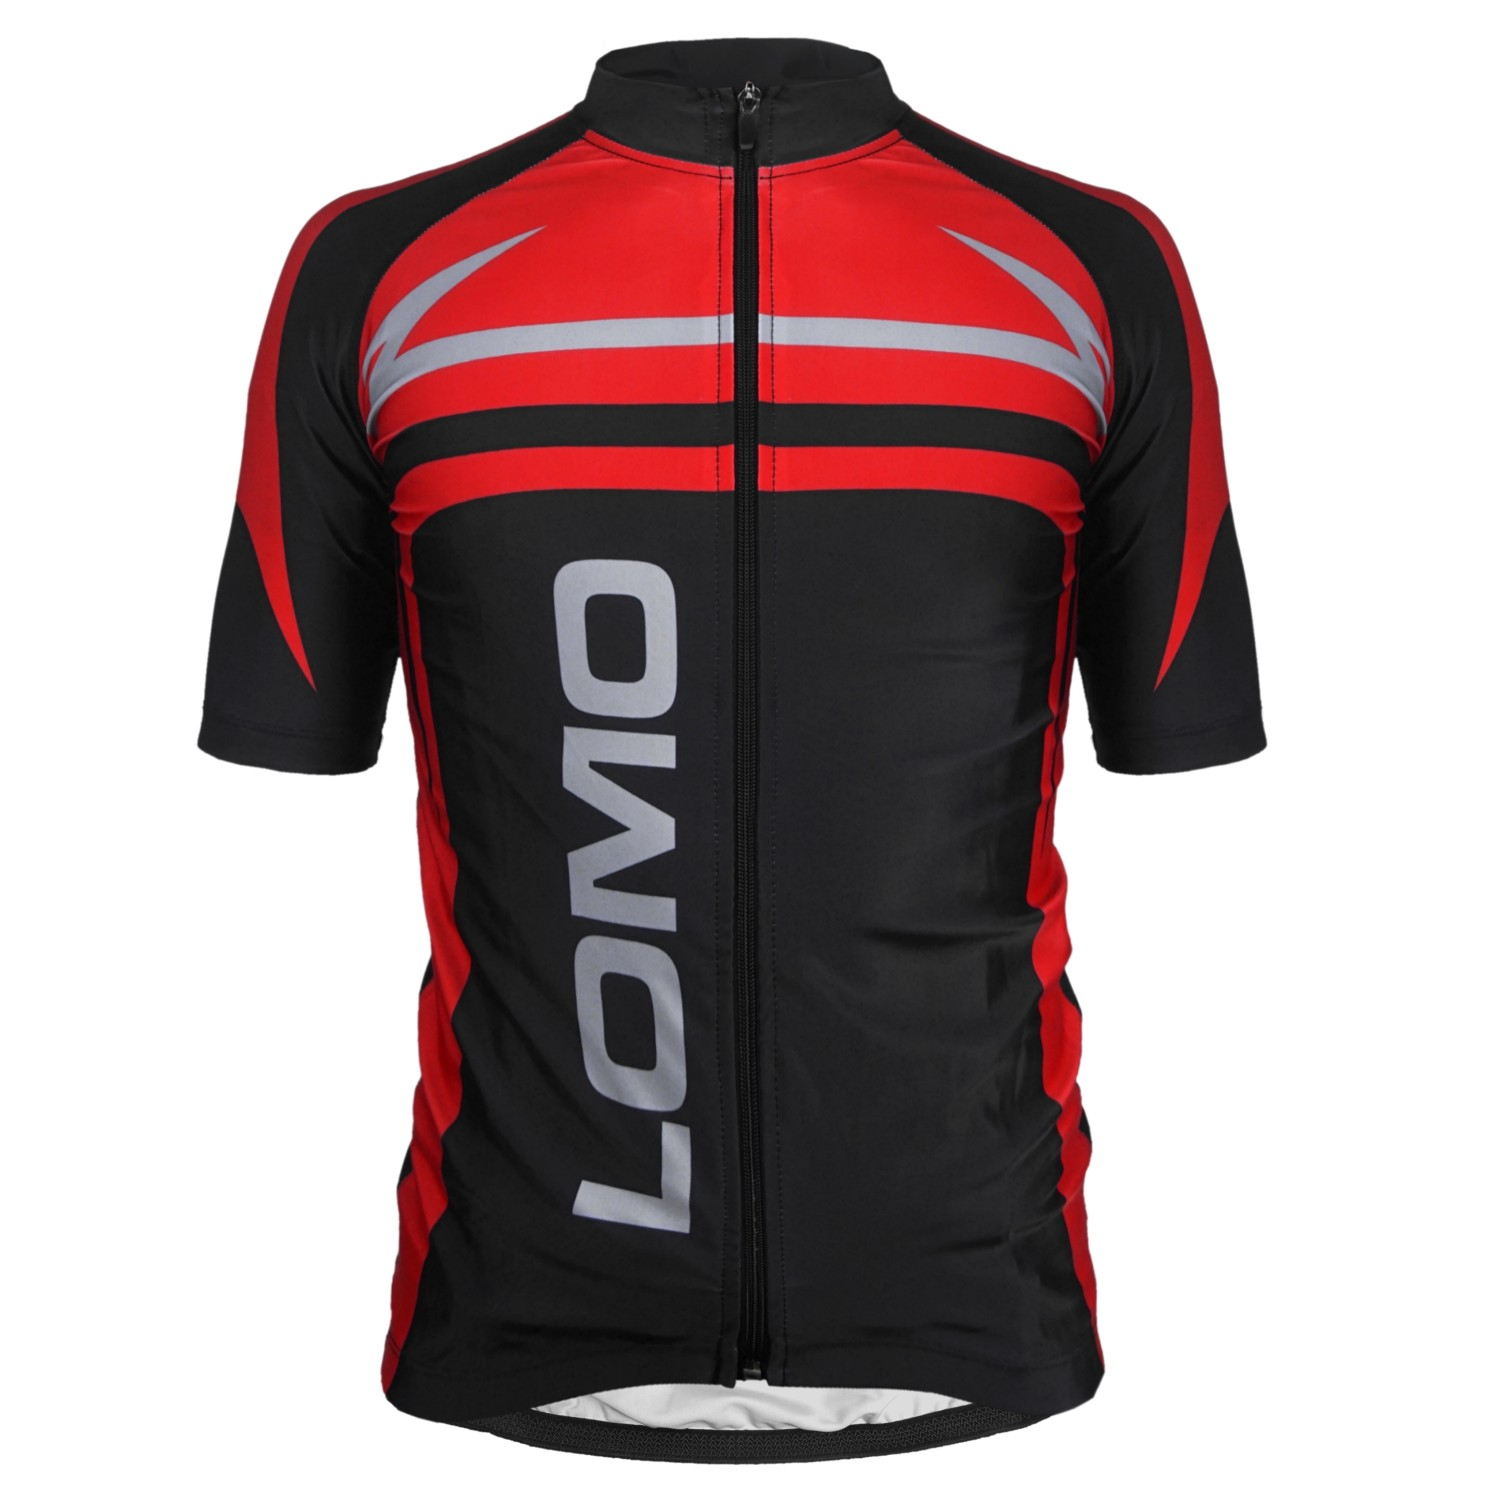 Lomo Short Sleeve Cycling Top - Full Zip